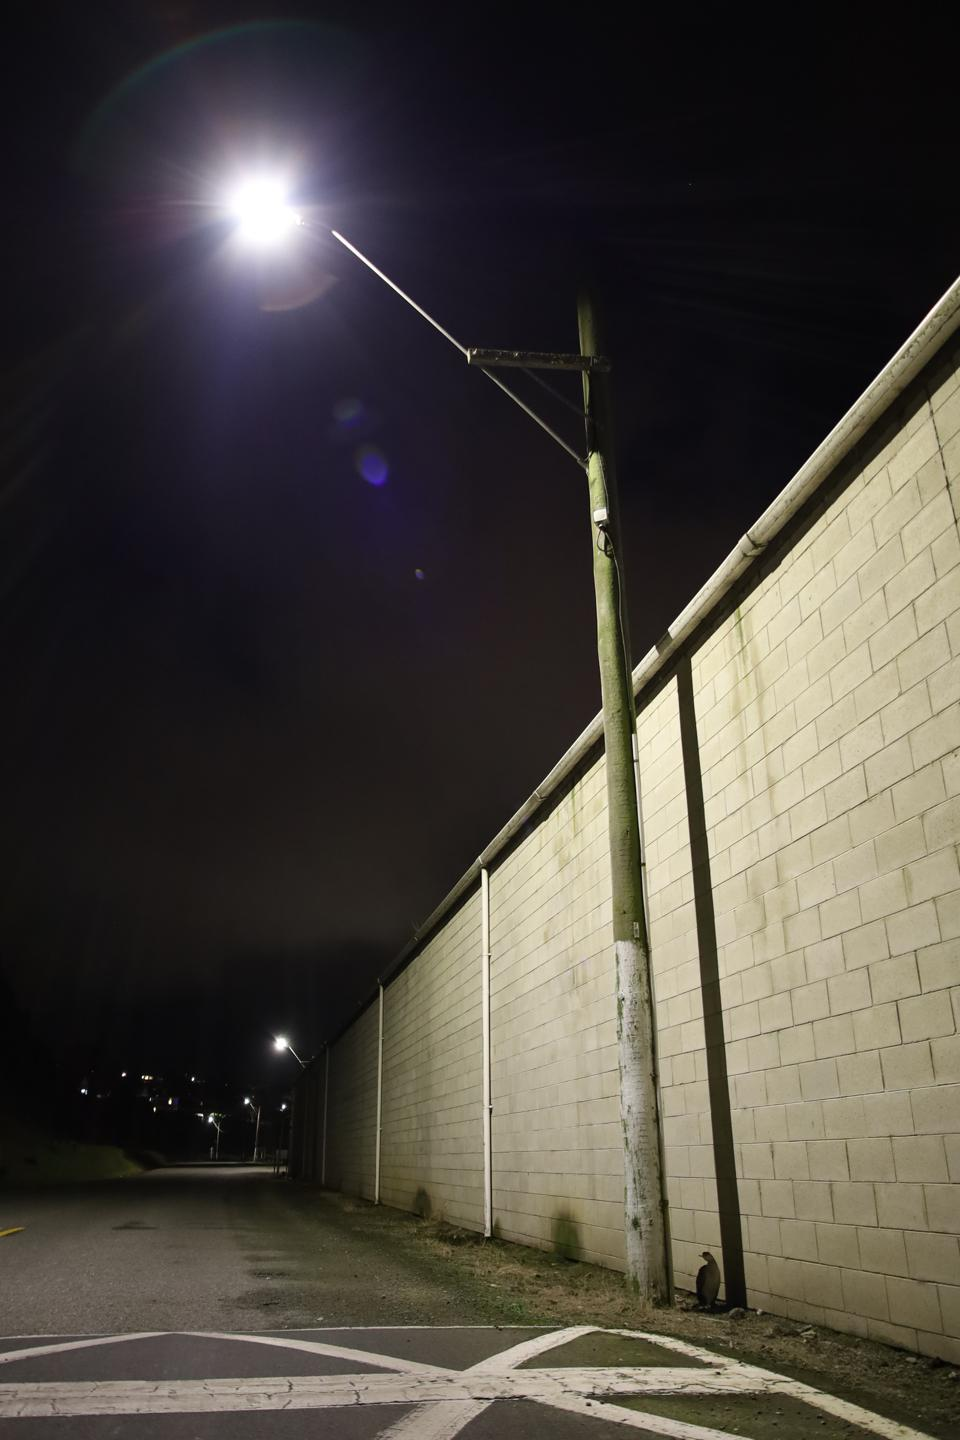 A light post shows how much light pollution impacts our ability to see the sky beyond.